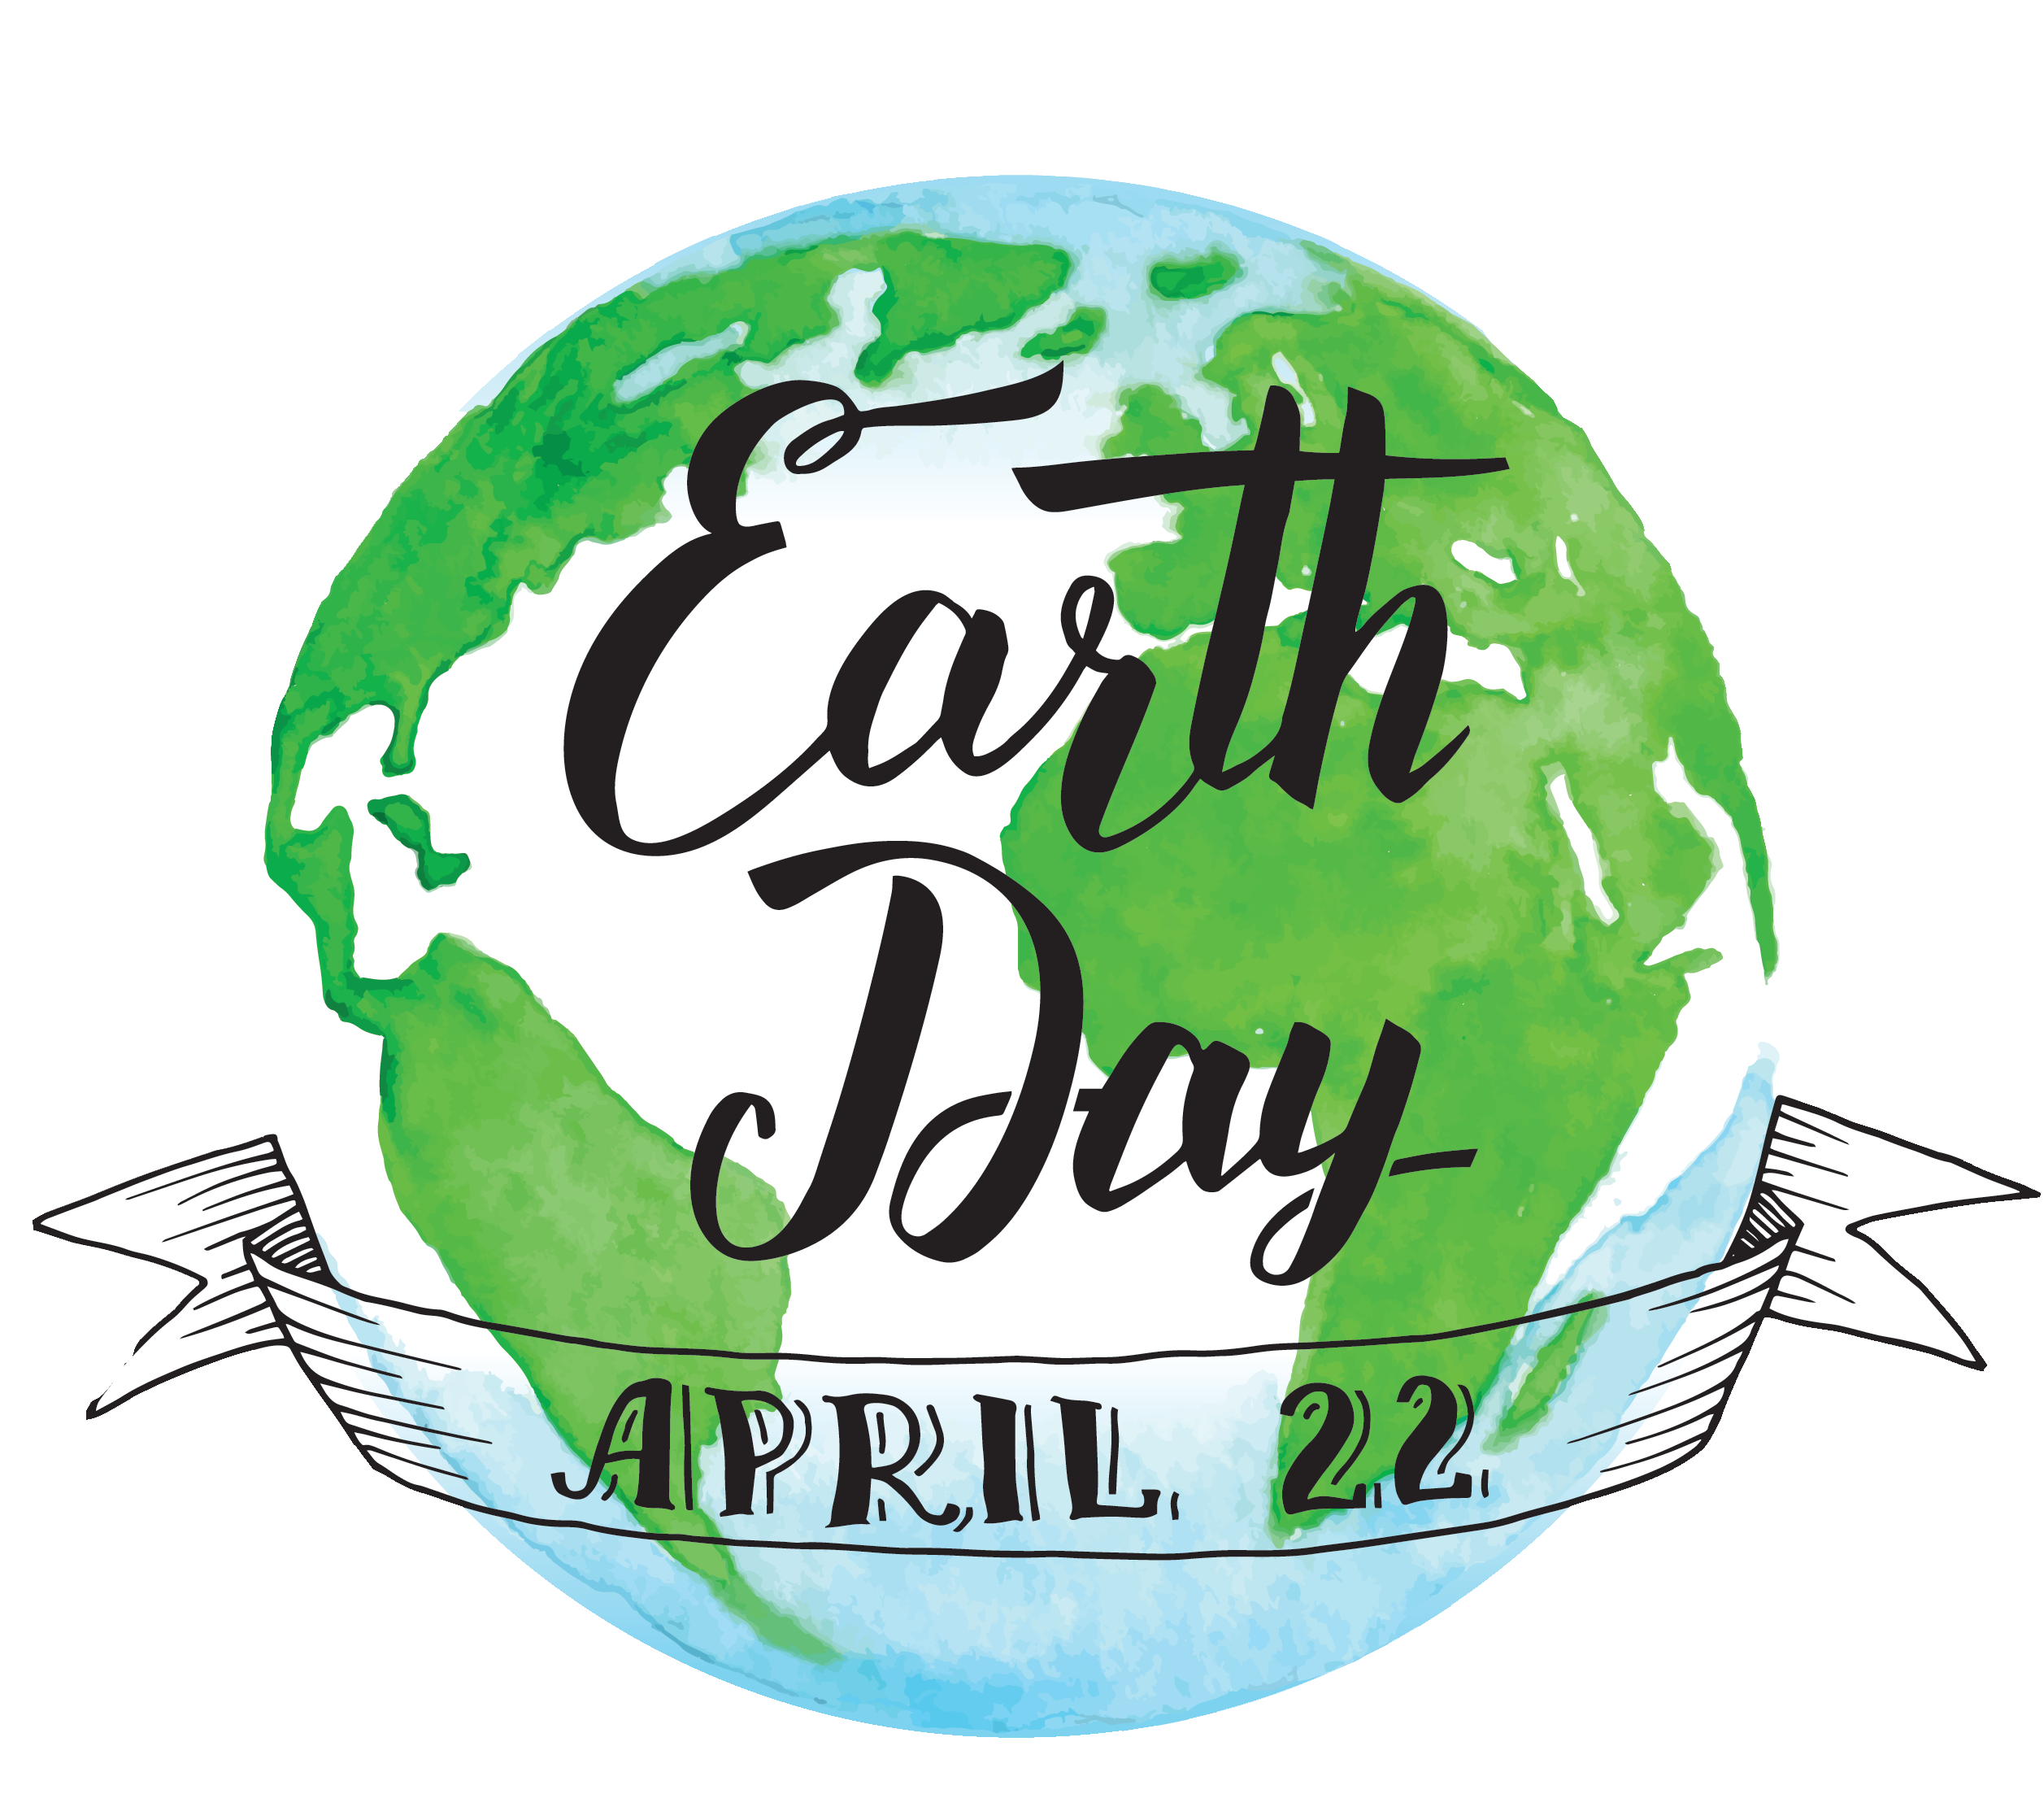 Earth Day Images Celebration Features